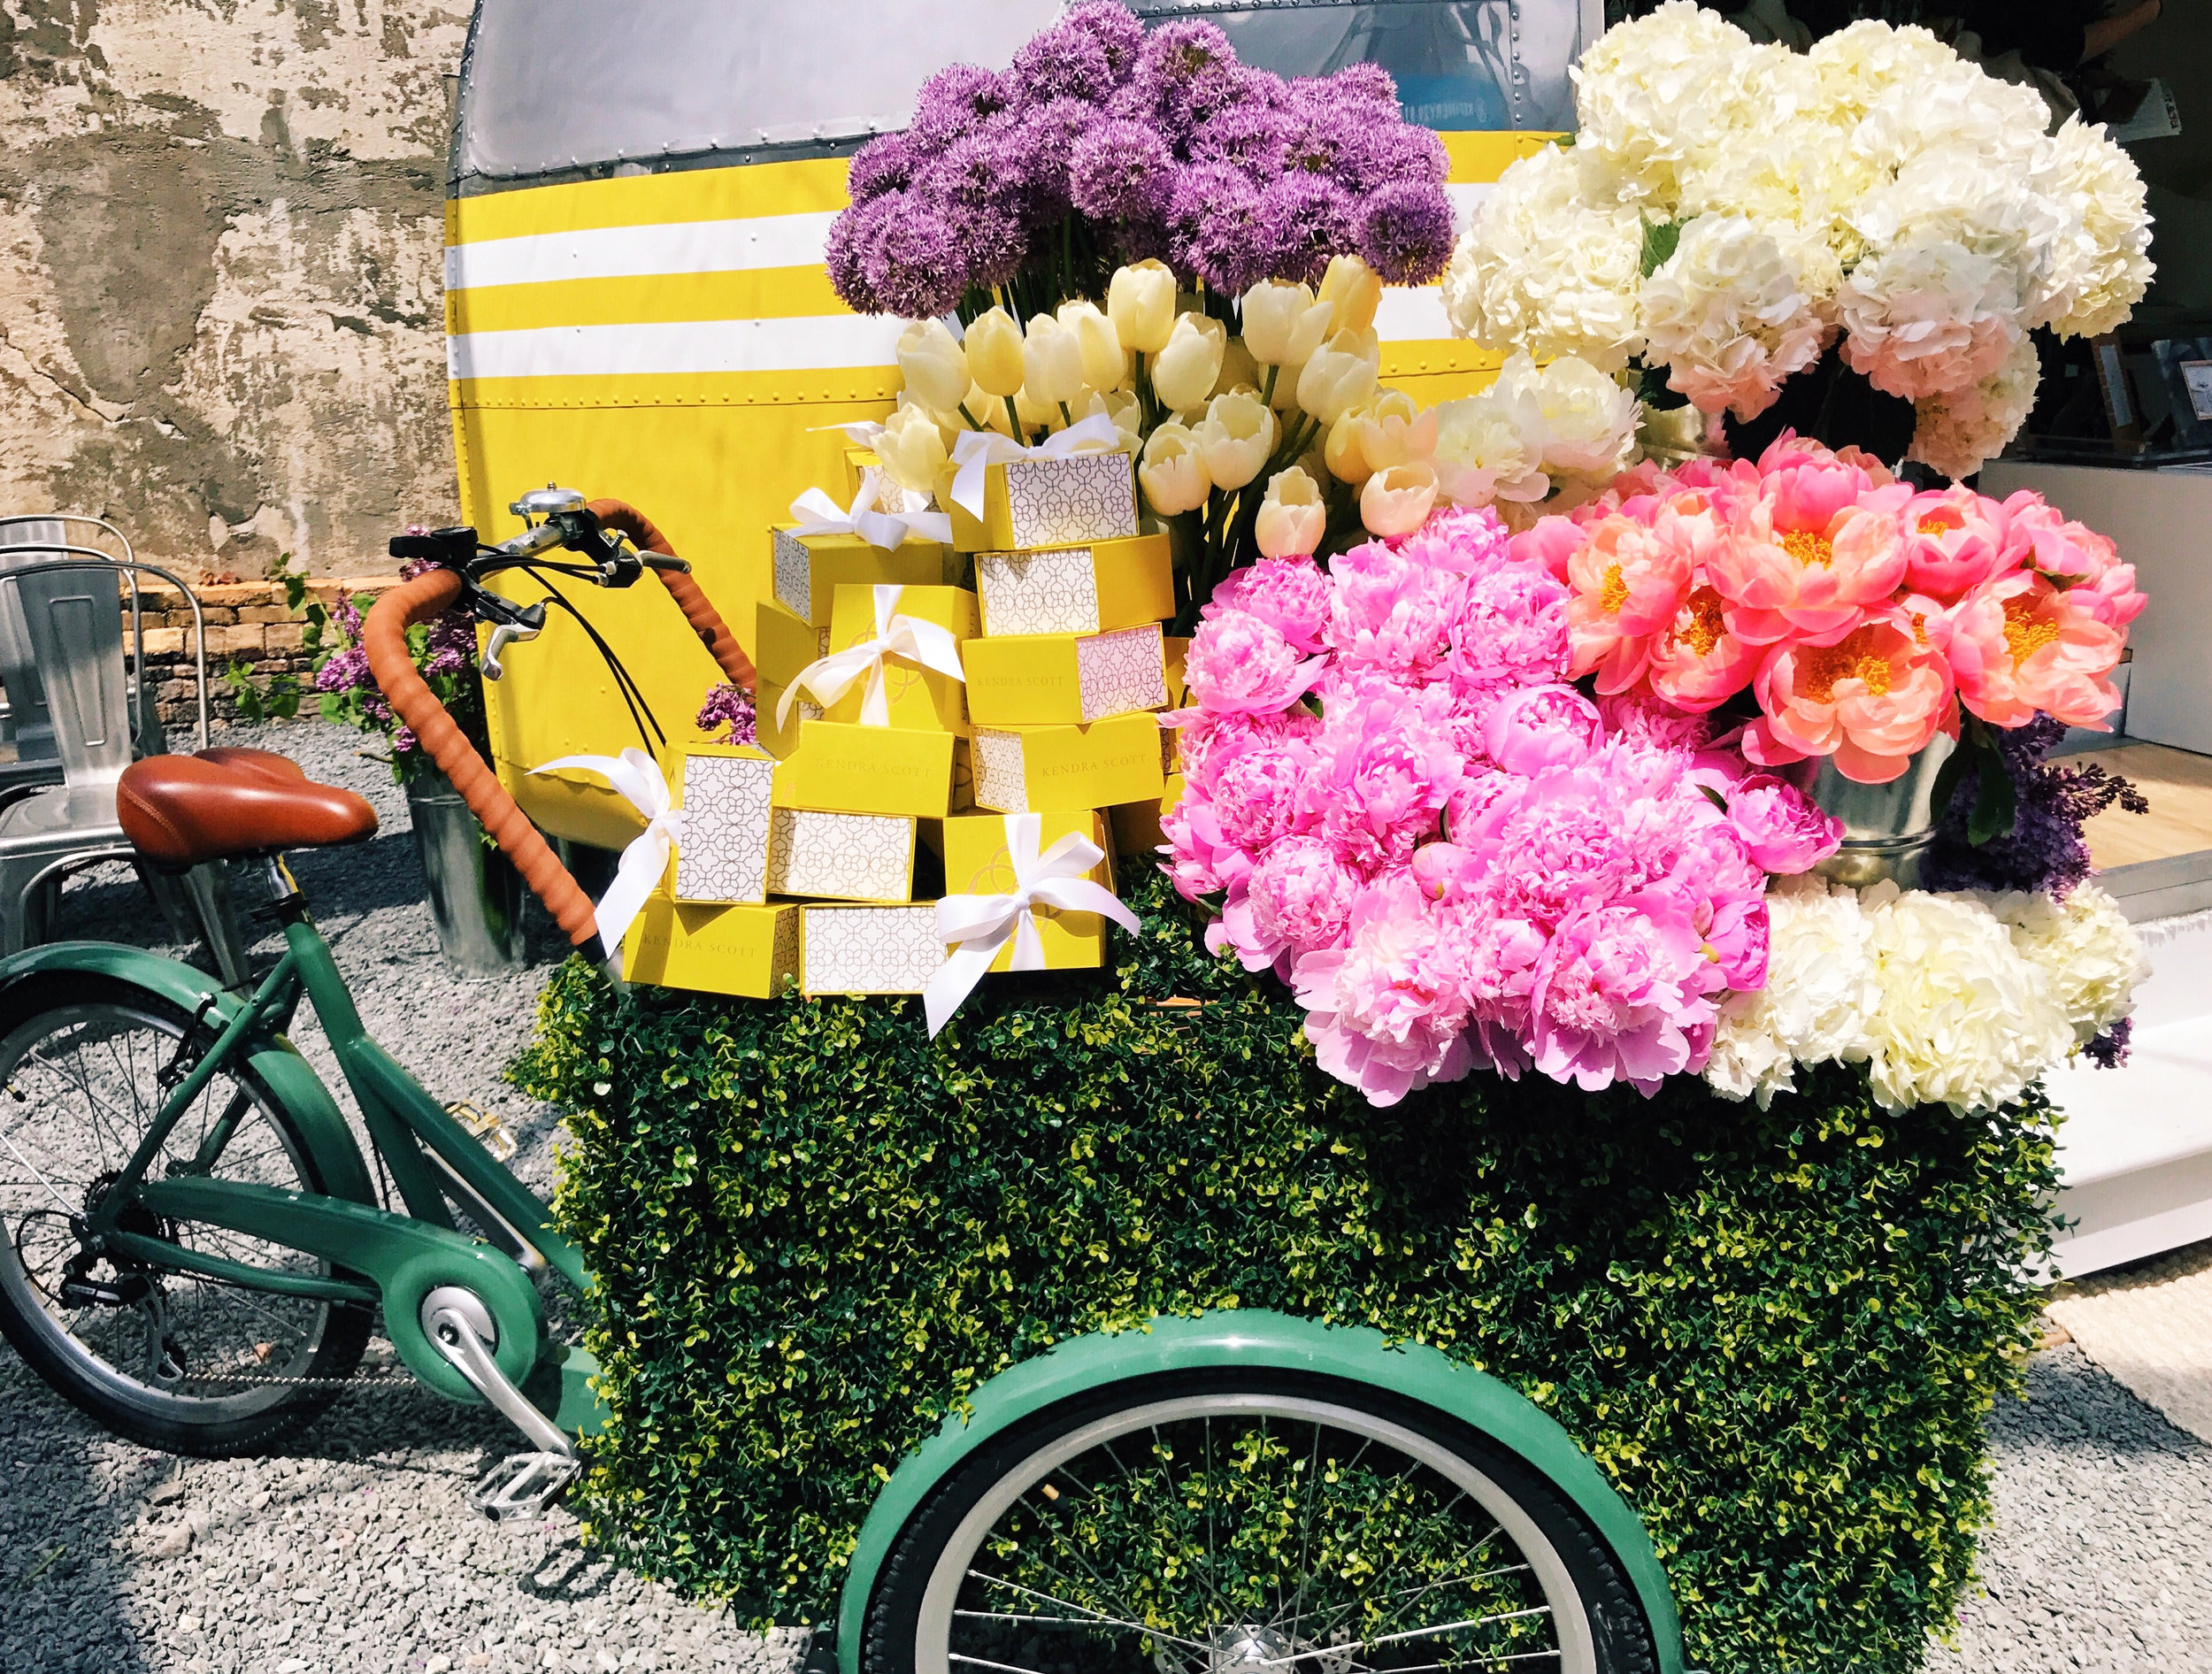 My kind of bicycle! By Kendra Scott.